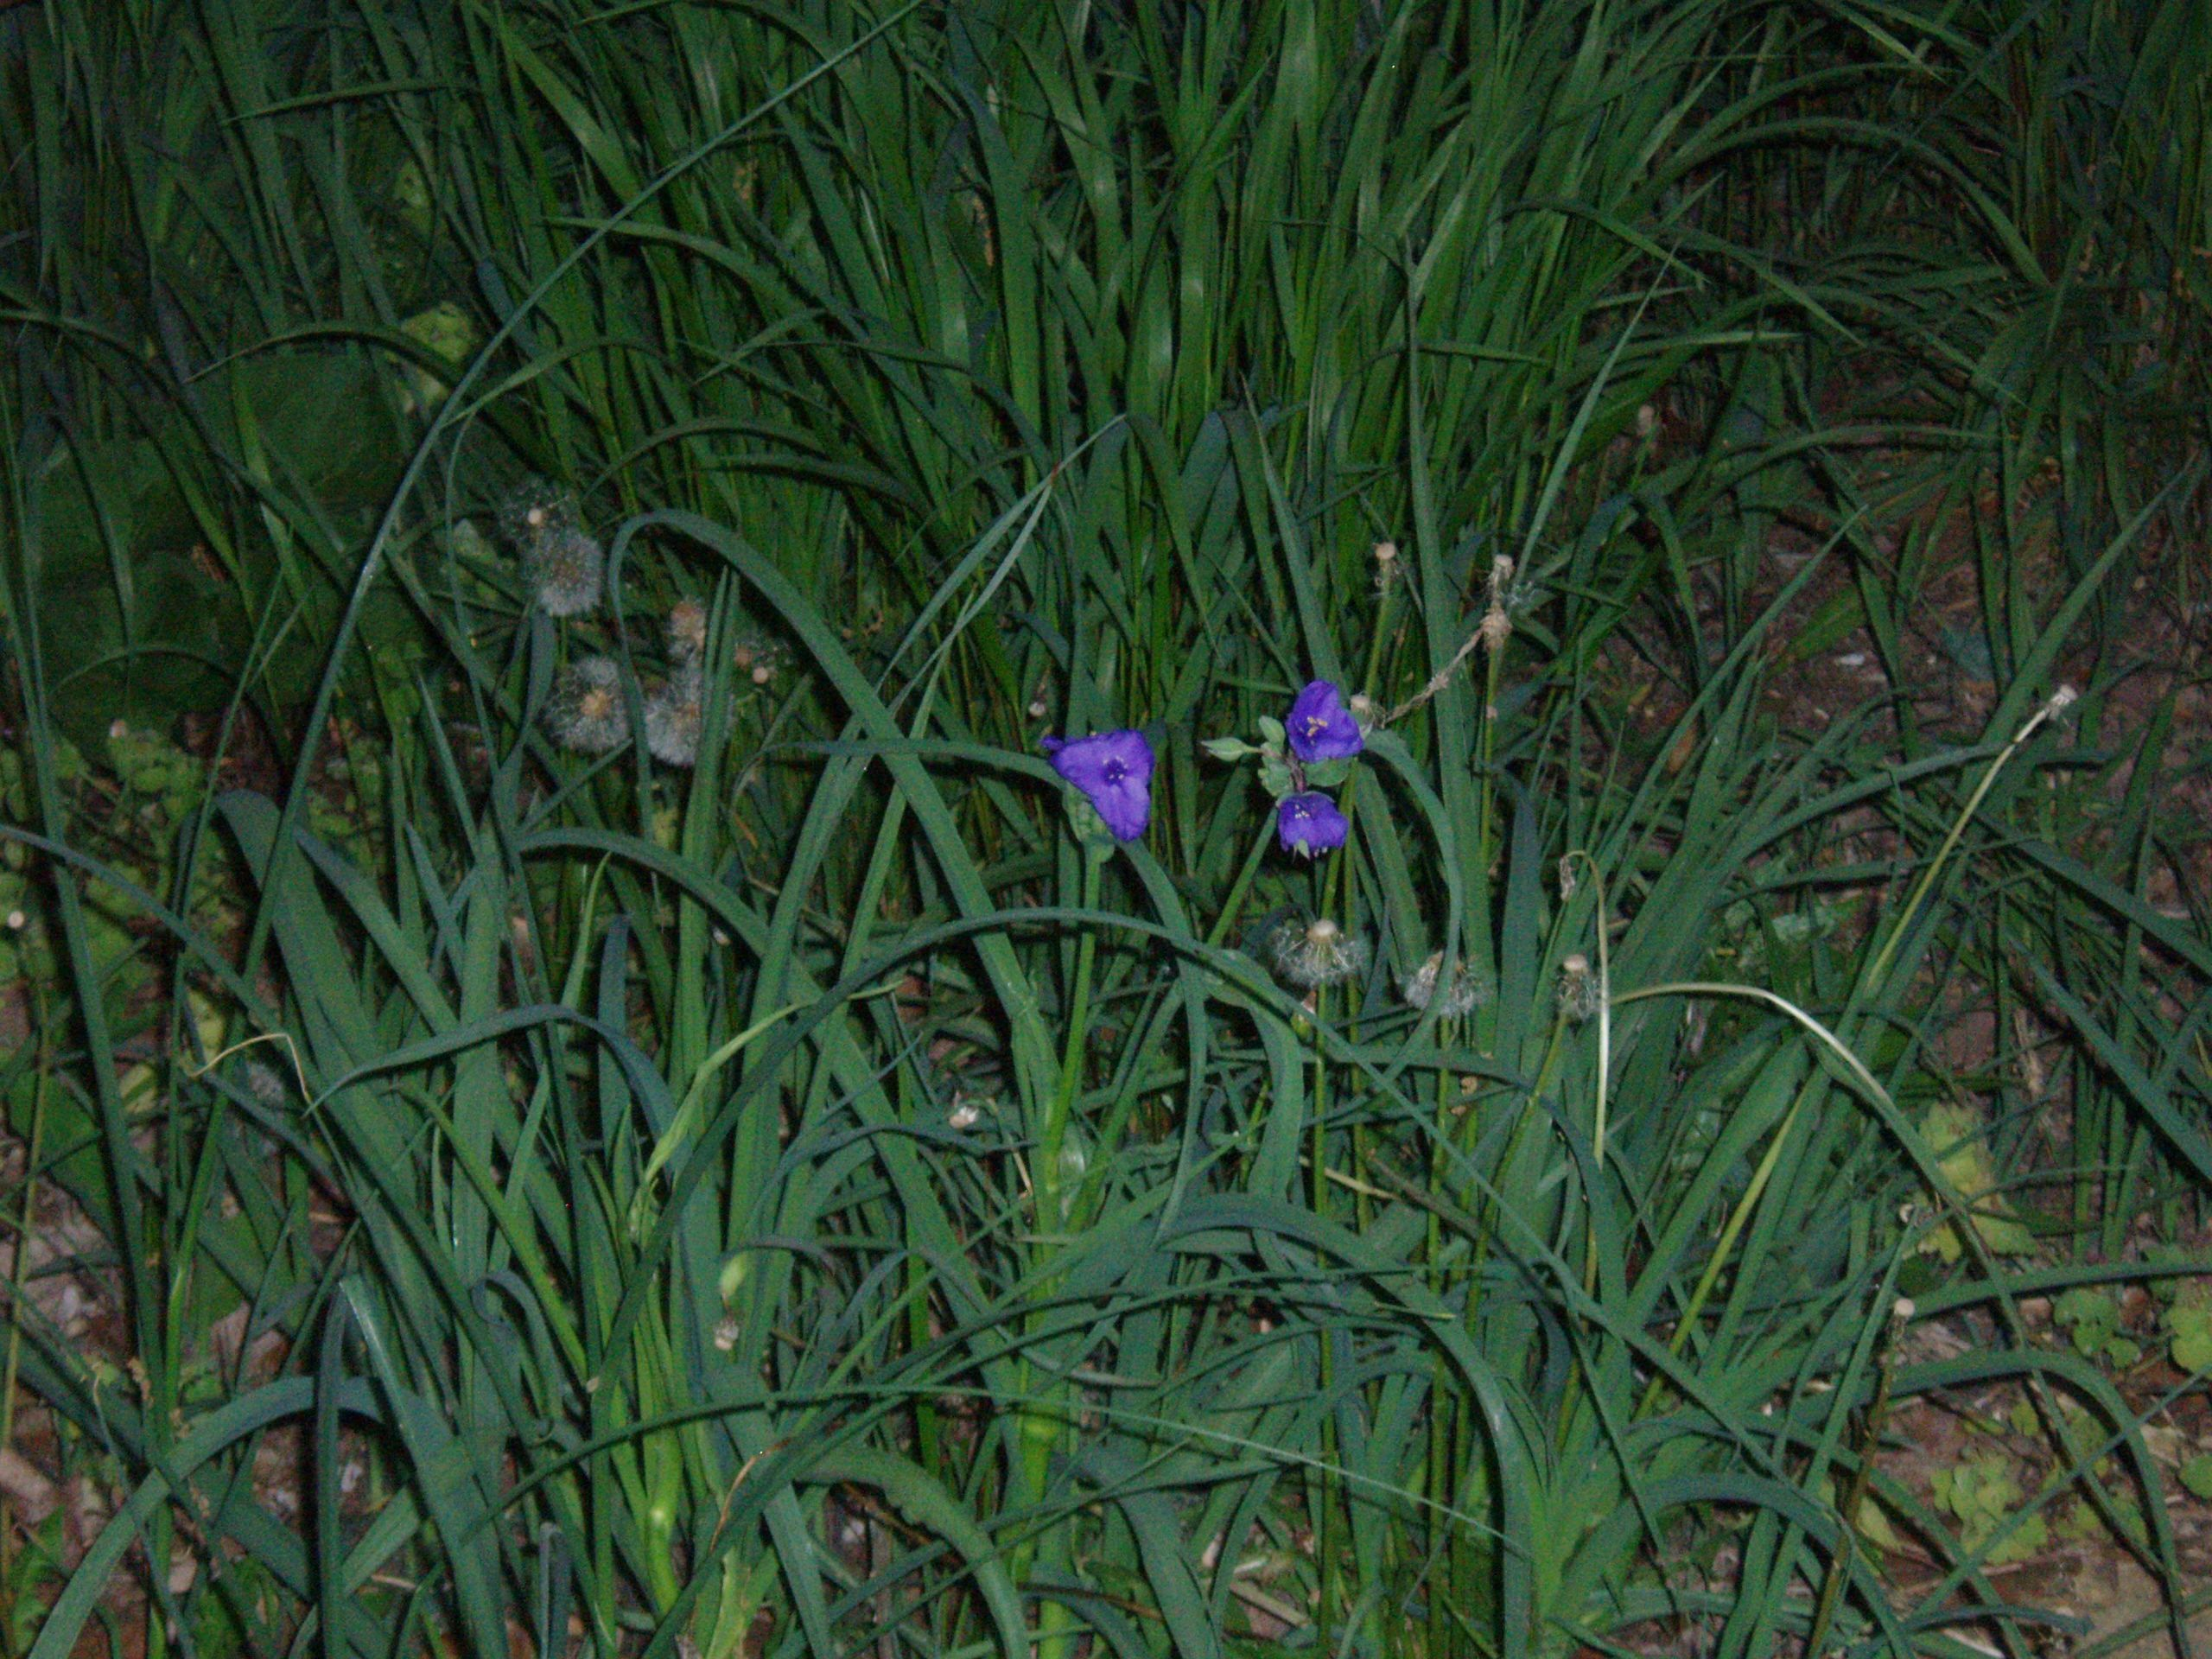 "{""blocks"":[{""key"":""e9g54"",""text"":"" Tradescantia ohiensis Ohio Spiderwort - potted plants email john@easywildflowers.com   "",""type"":""unstyled"",""depth"":0,""inlineStyleRanges"":[],""entityRanges"":[],""data"":{}}],""entityMap"":{}}"